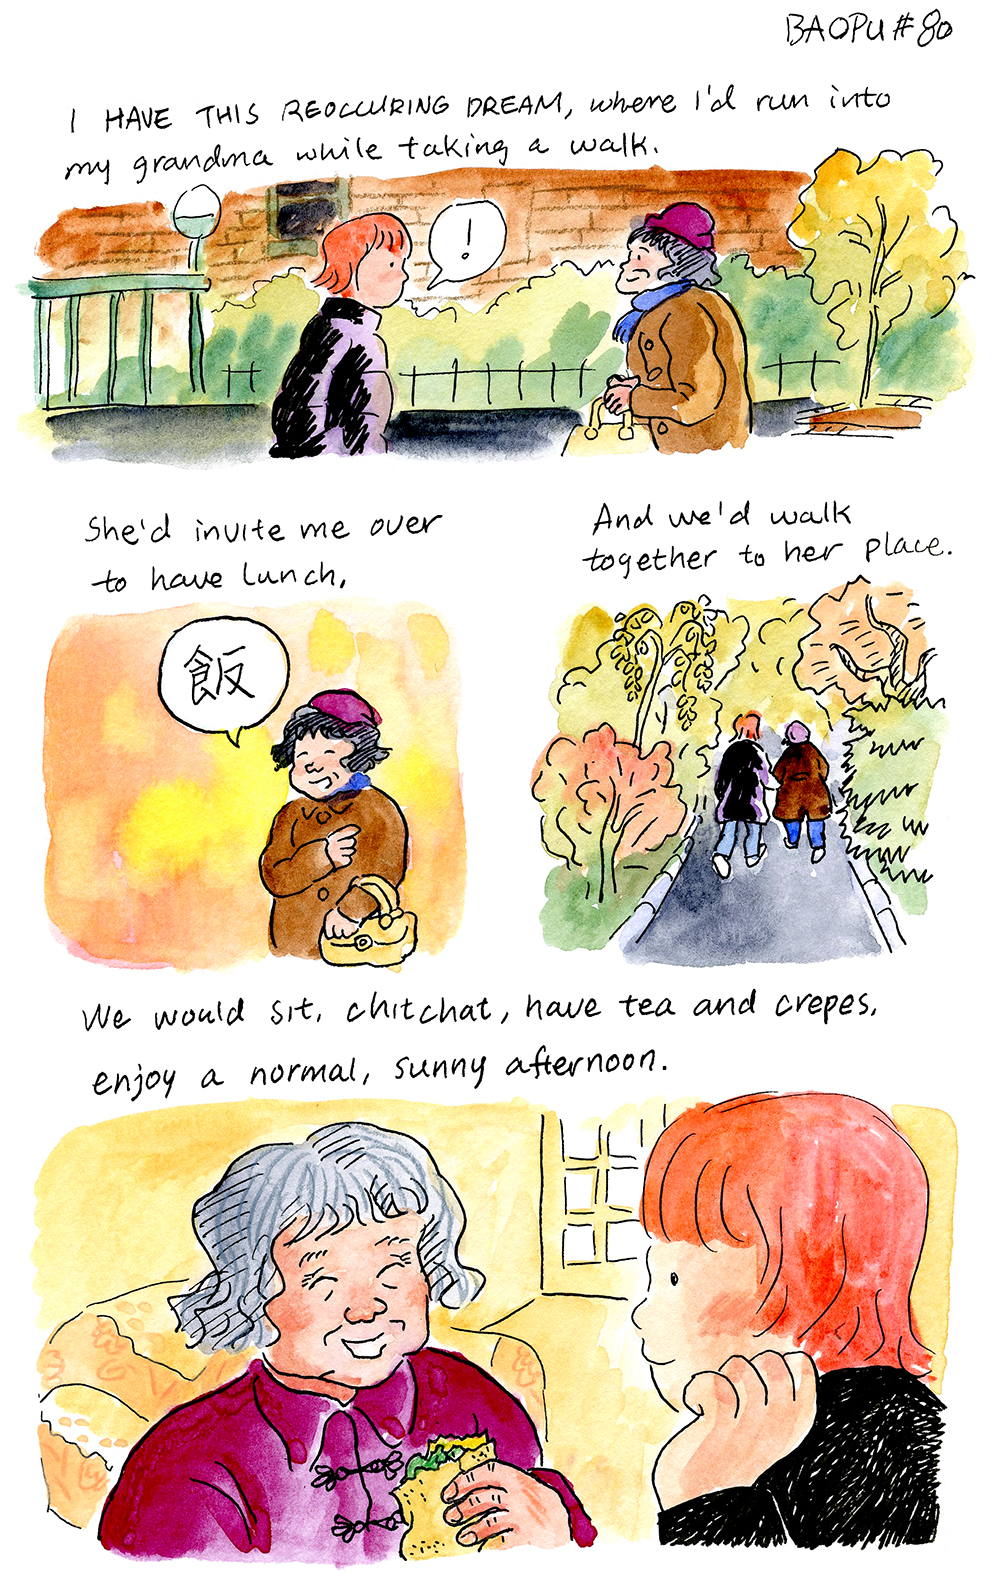 Yao describes reoccurring dream, where they run into their grandma while taking a walk. In the dream their grandma invites the home for lunch together they have tea and crepes. The dream is tinted with warm watercolors, the sky perfectly golden no matter if outside or inside. This happens across a four panel watercolor.